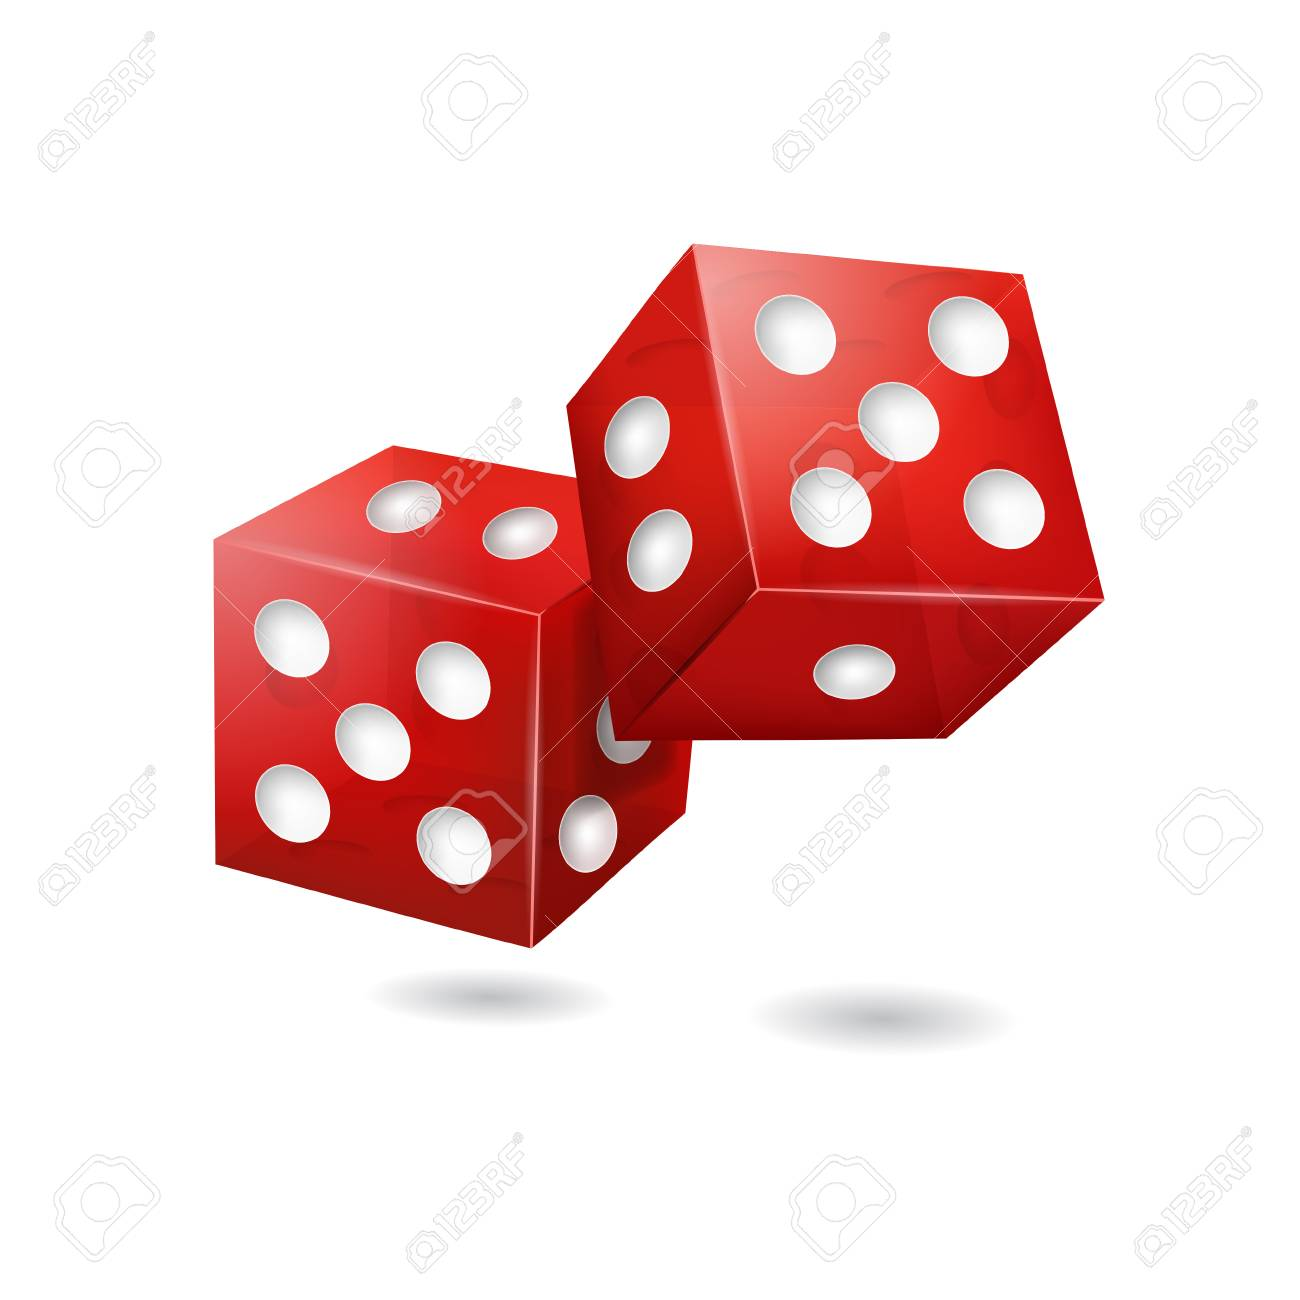 Realistic 3d Red Casino Dice. Vector.